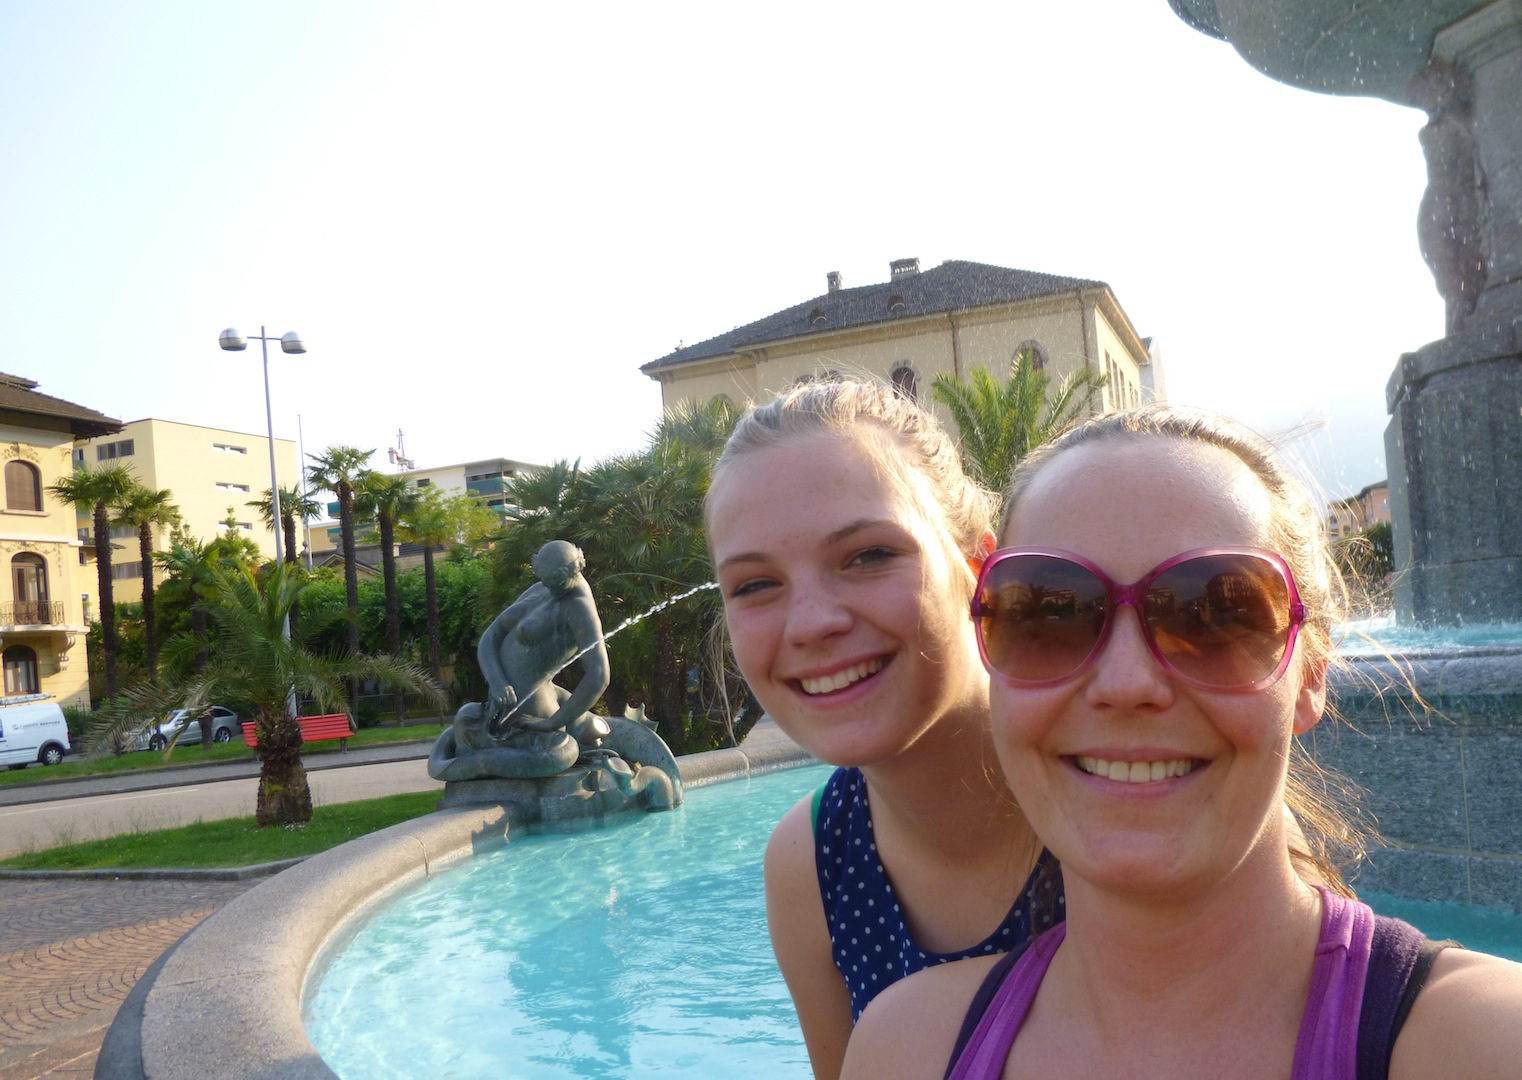 My little sister and I having some fountain time